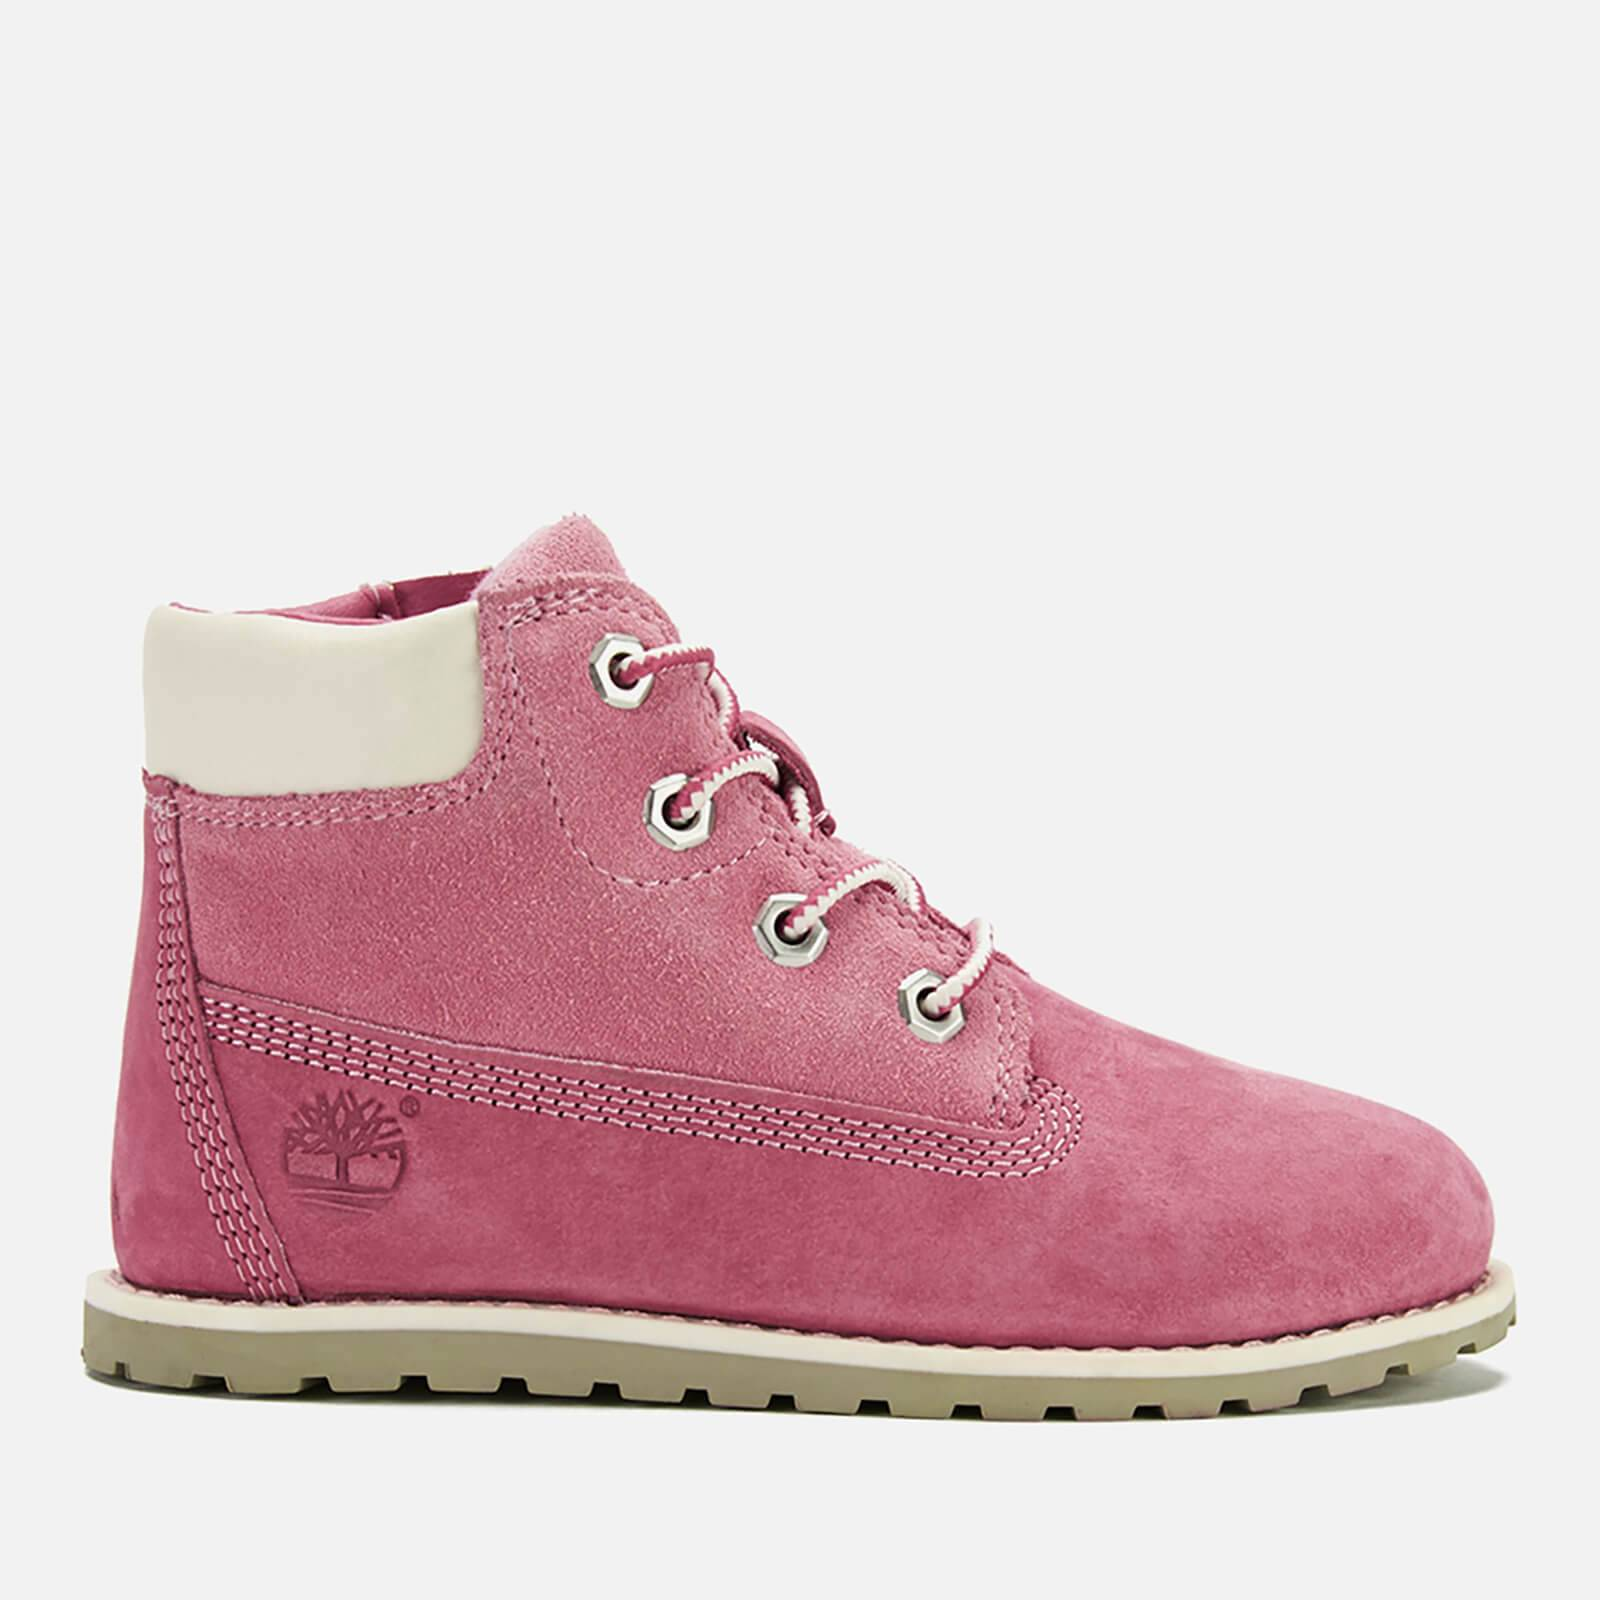 Timberland Toddlers' Pokey Pine Leather 6 Inch Zip Boots - Pink - UK 8.5 Toddlers